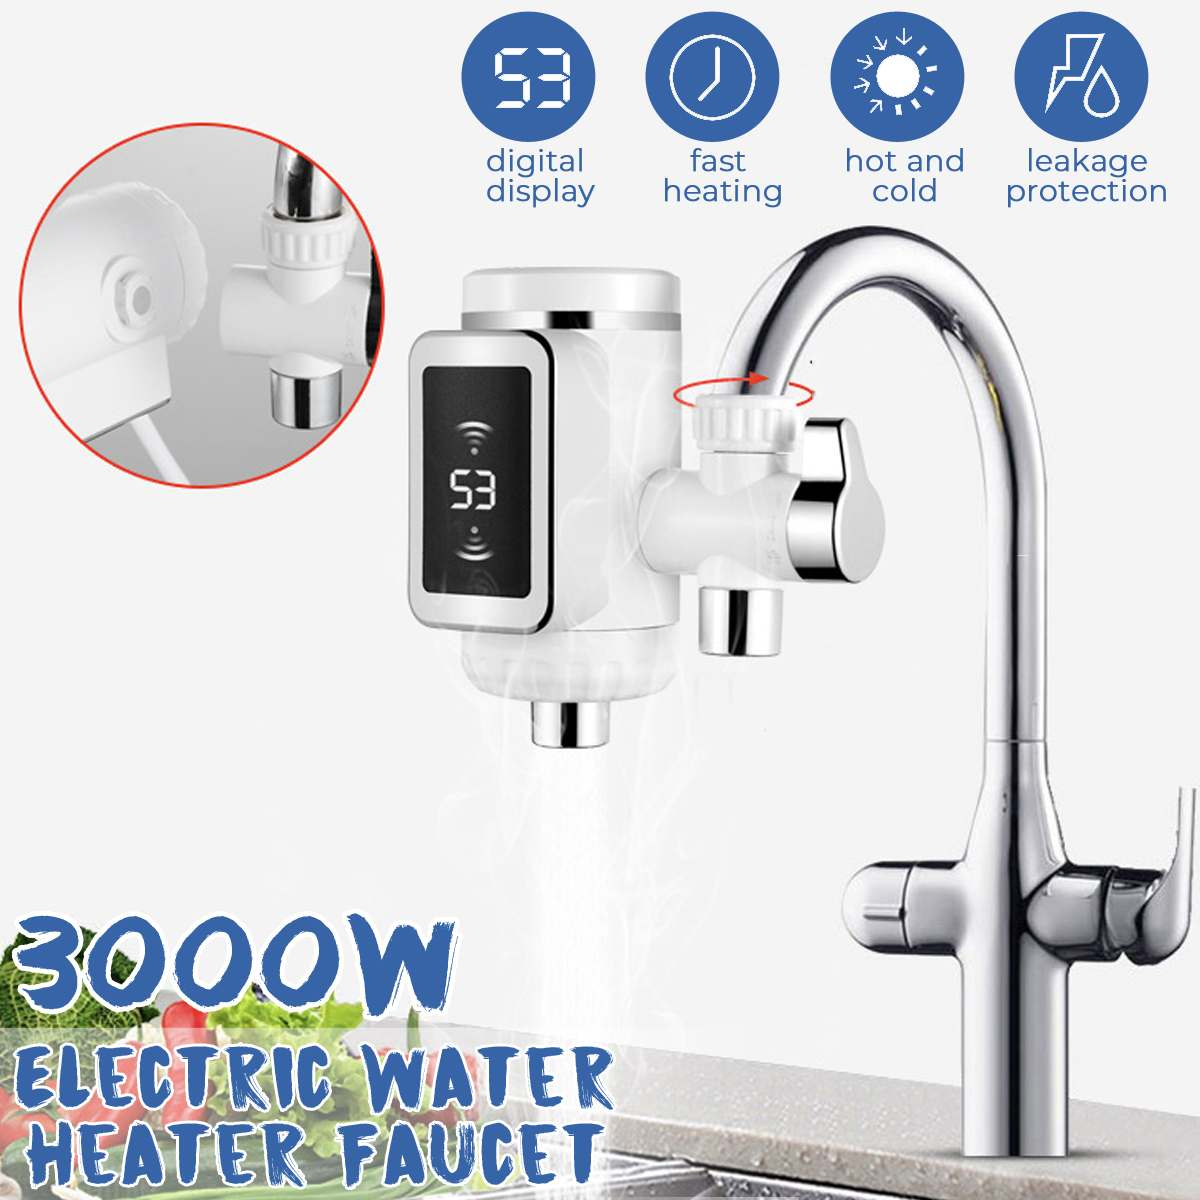 3000W Tankless Water Heater LED Display Electric Kitchen Water Heating Tap Instant Hot Water Faucet Heating EU Pulg 220V